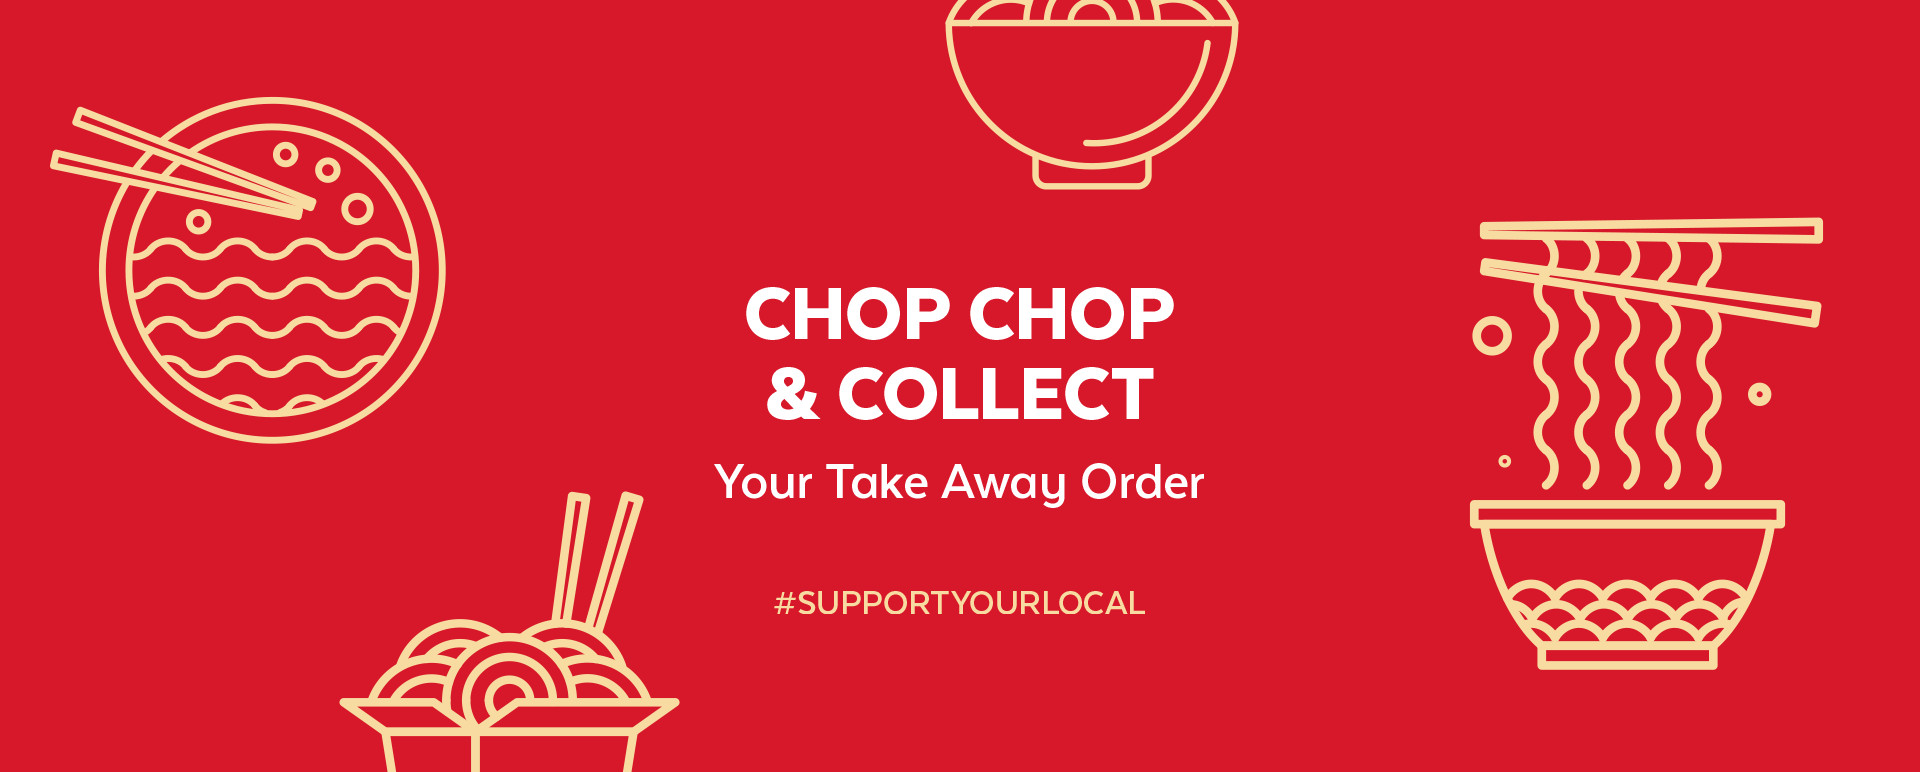 Chop Chop & Collect Your Takeaway Order